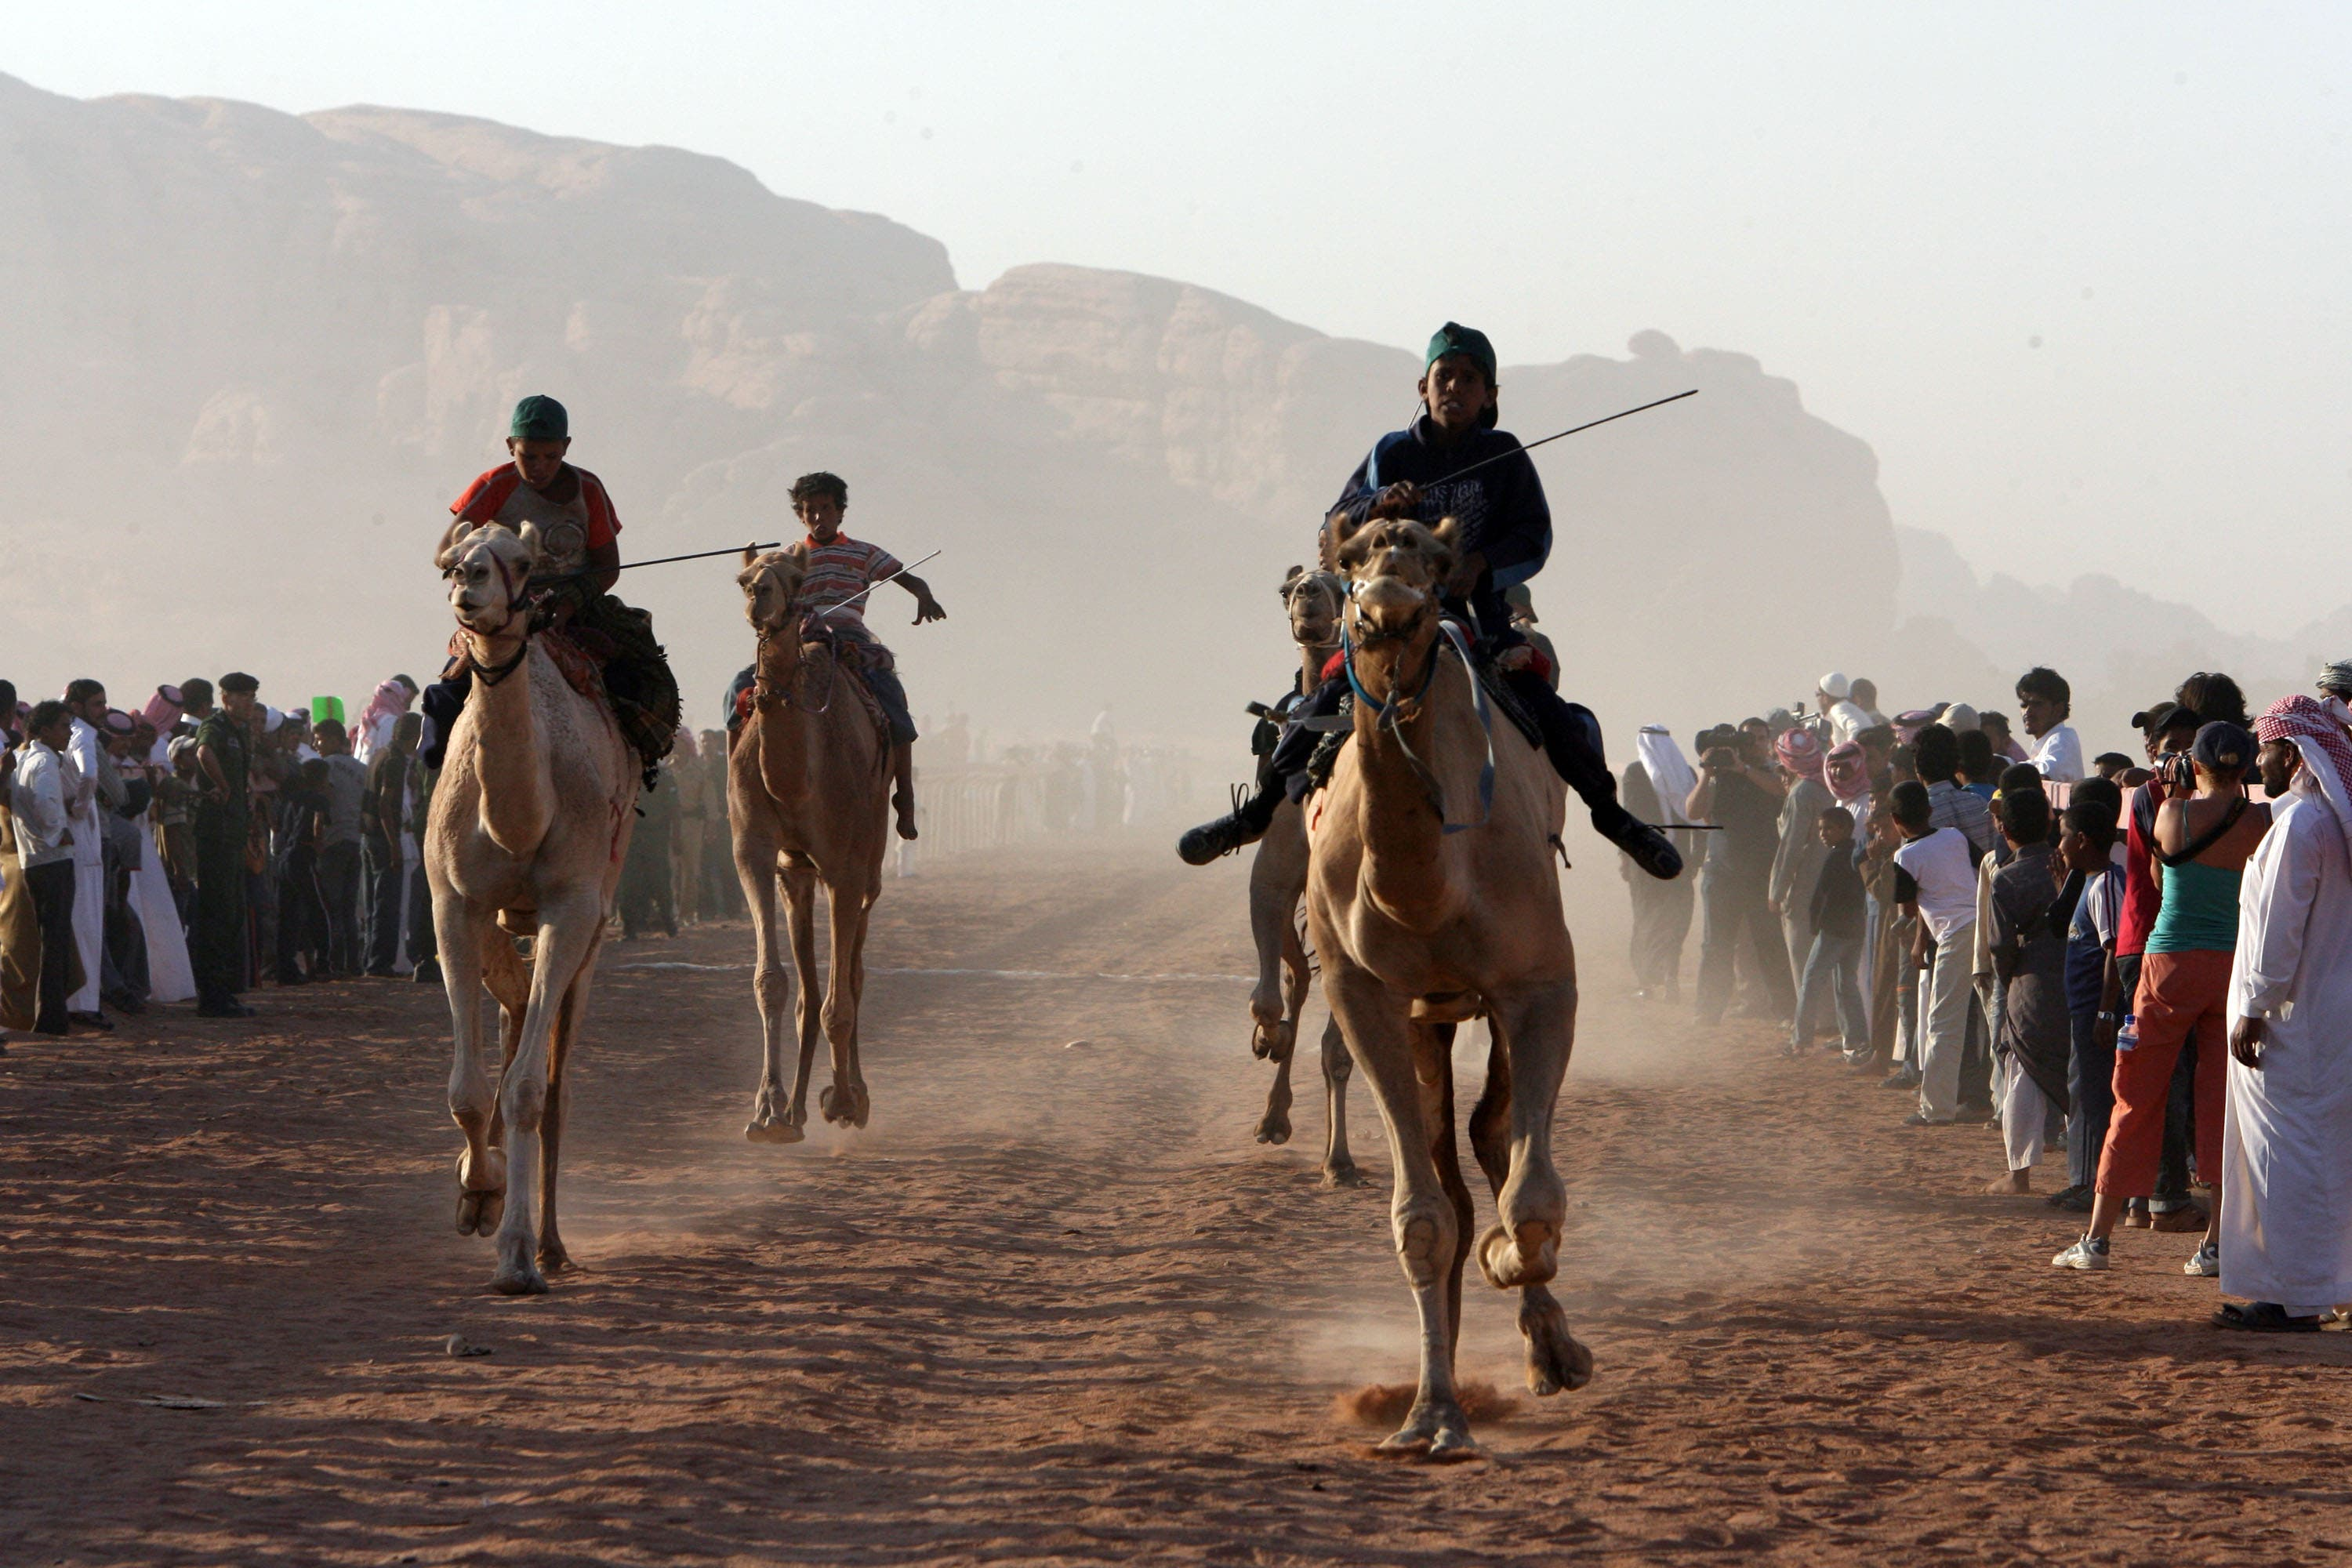 Jordan is quite organically linked to Arabia with many Hashemites tracing quite newly back to tribes in Saudi. Here, a camel race in Wadi Rum.